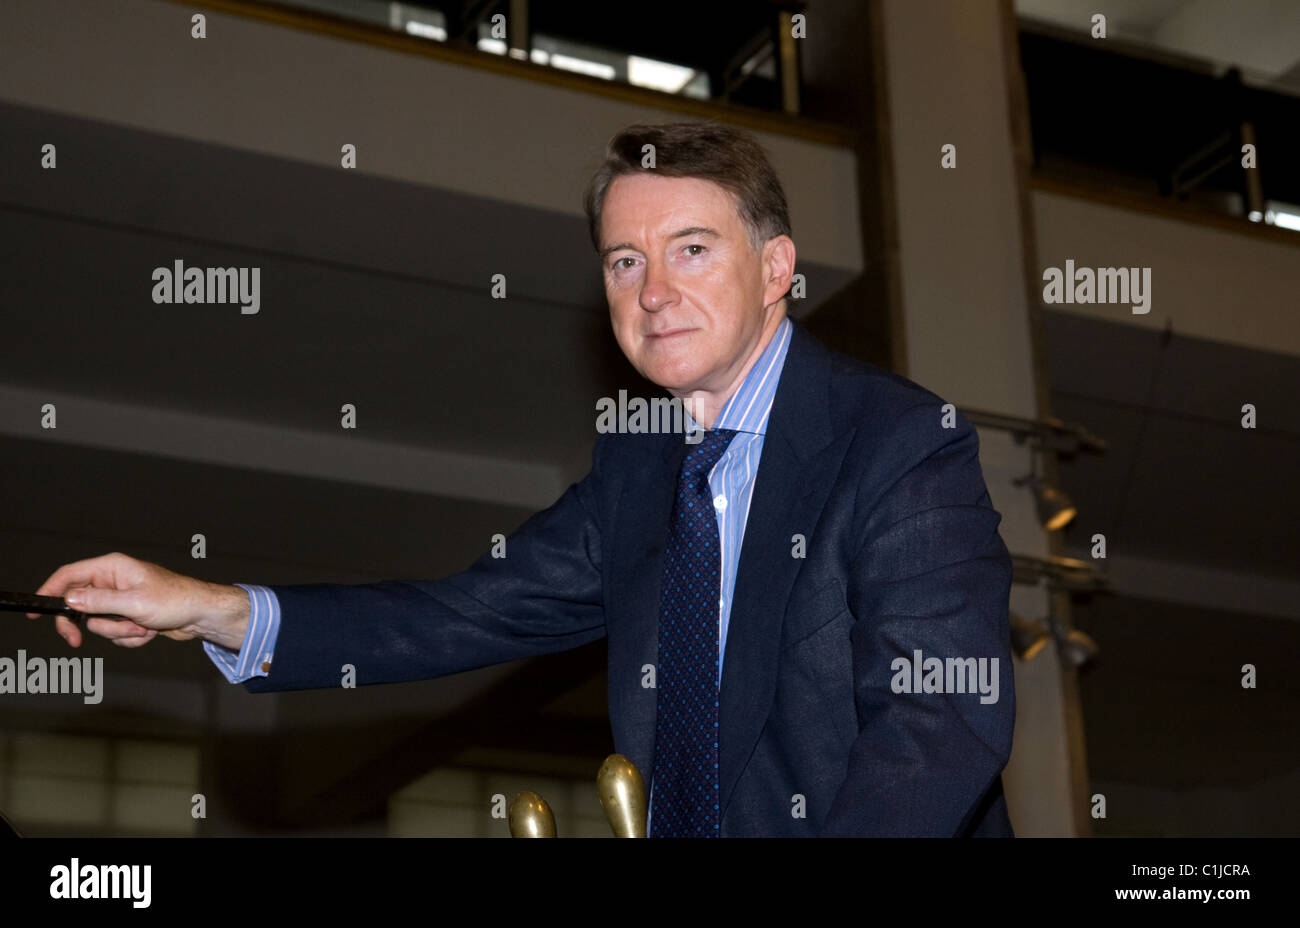 Lord Peter Mandelson 'Centenary Journey' launch at the Science Museum London, England - 09.06.09 Stock Photo